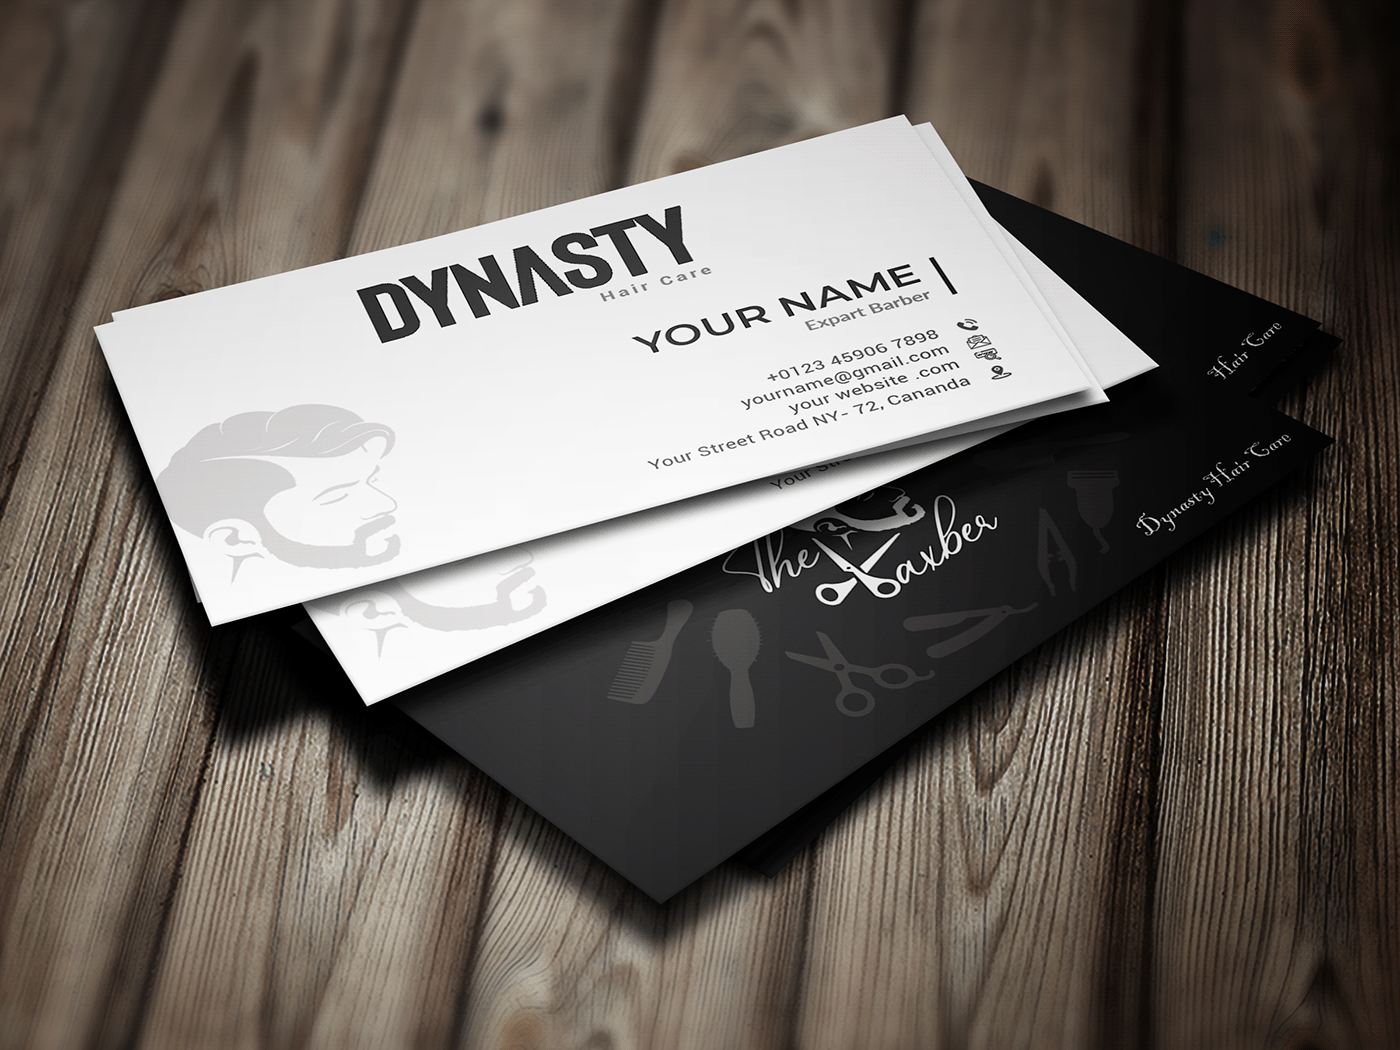 I will design creative unique business cards for 1 day